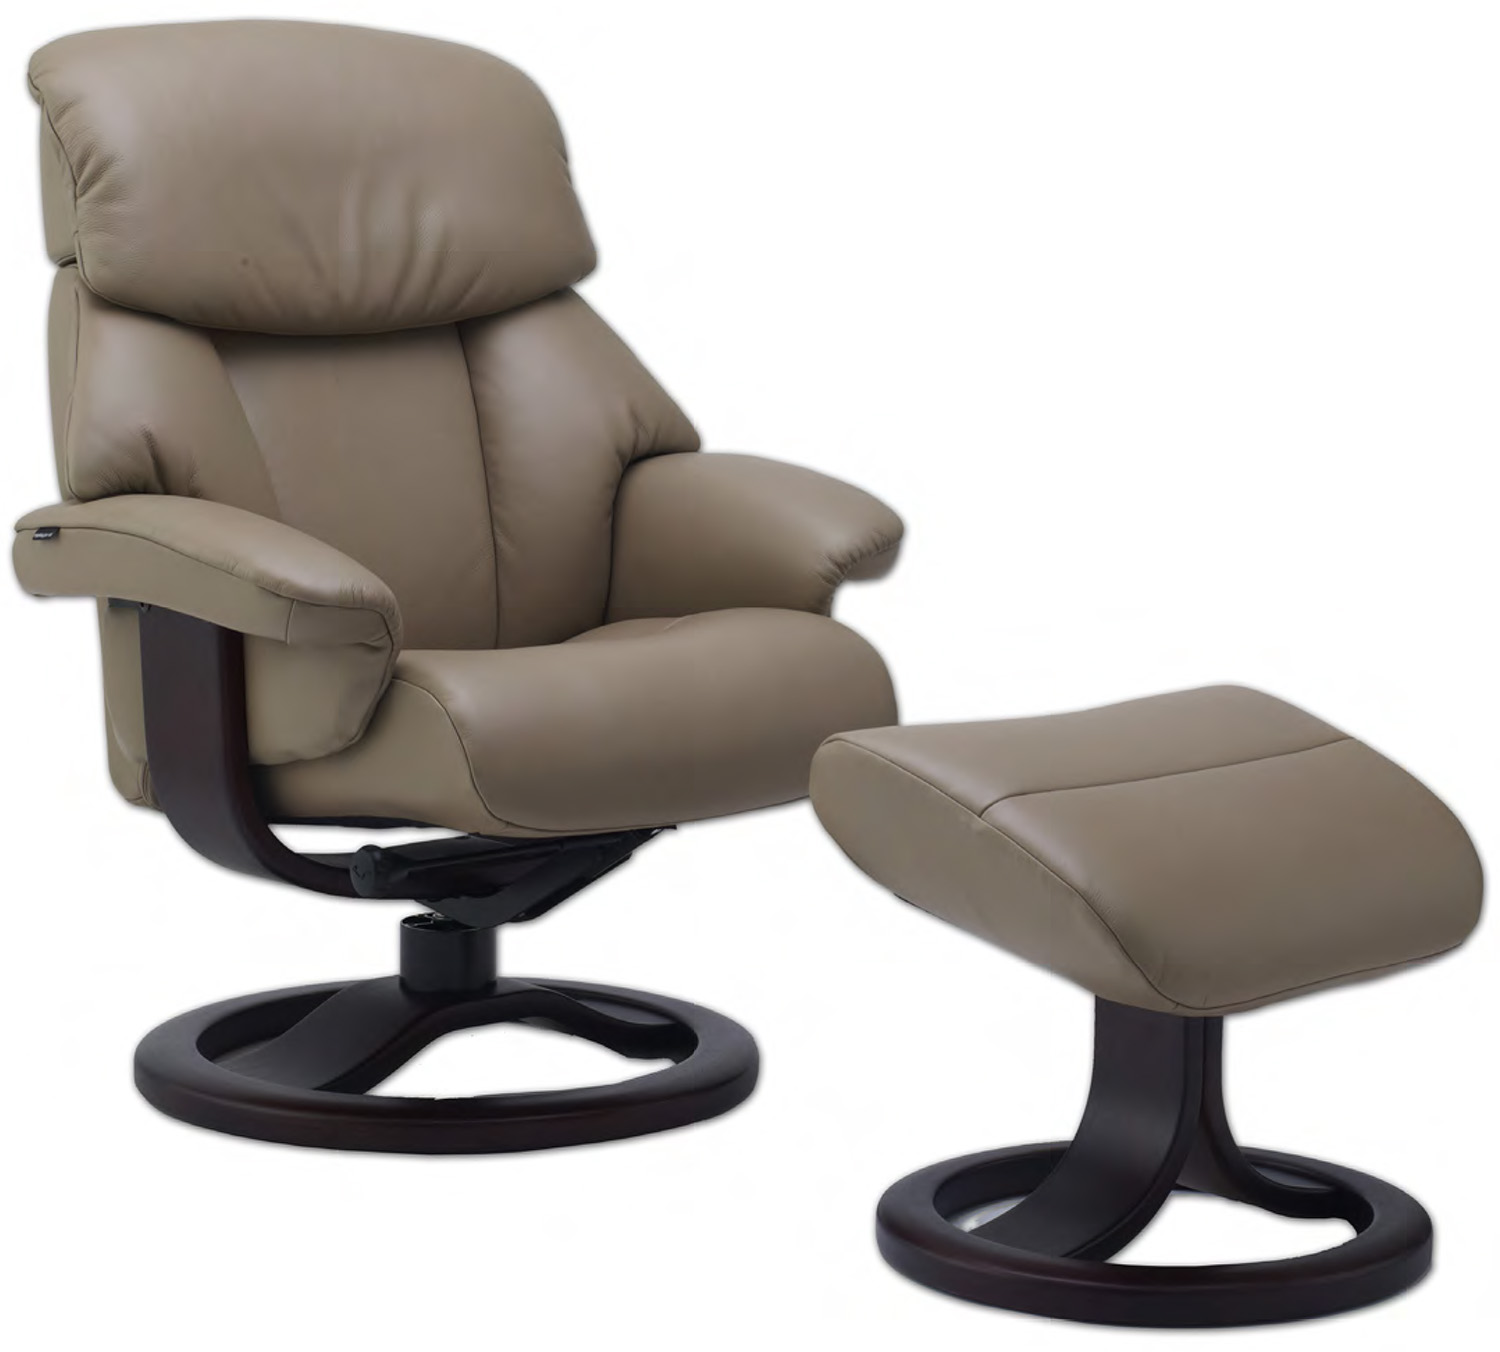 Fjords Alfa 520 Ergonomic Leather Recliner Chair Ottoman Scandinavian Norwe